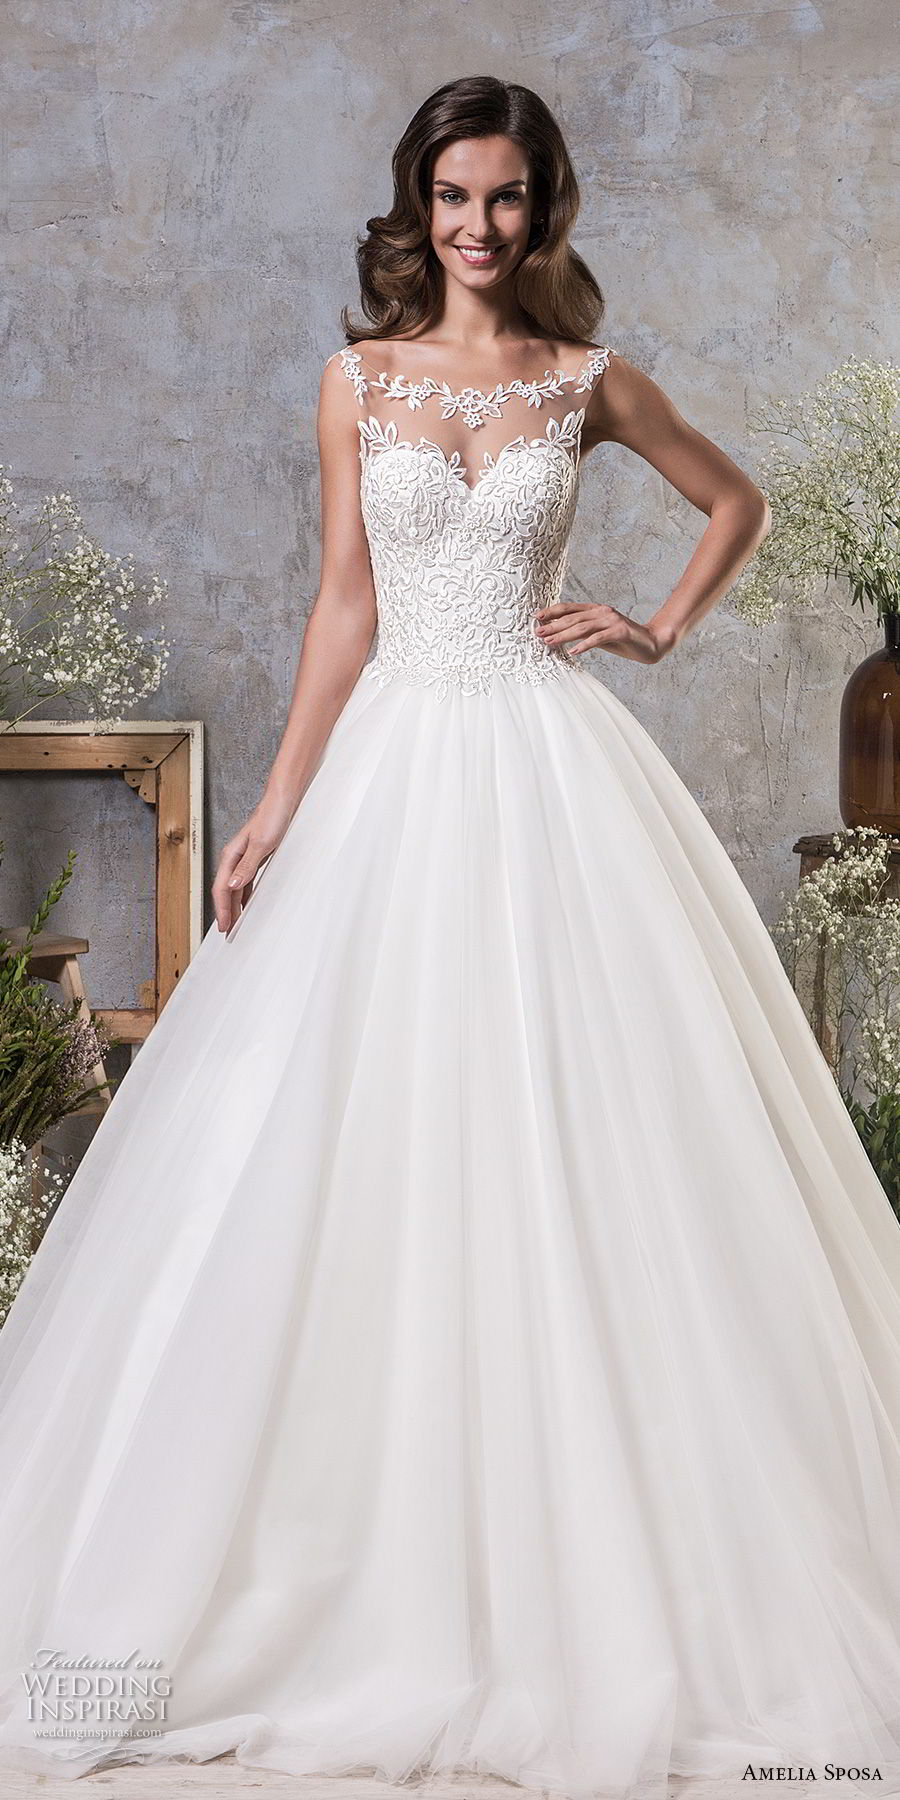 amelia sposa fall 2018 bridal sleeveless illusion bateau sweetheart neckline heavily embellished bodice elegant a line wedding dress sheer lace back chapel train (13) mv